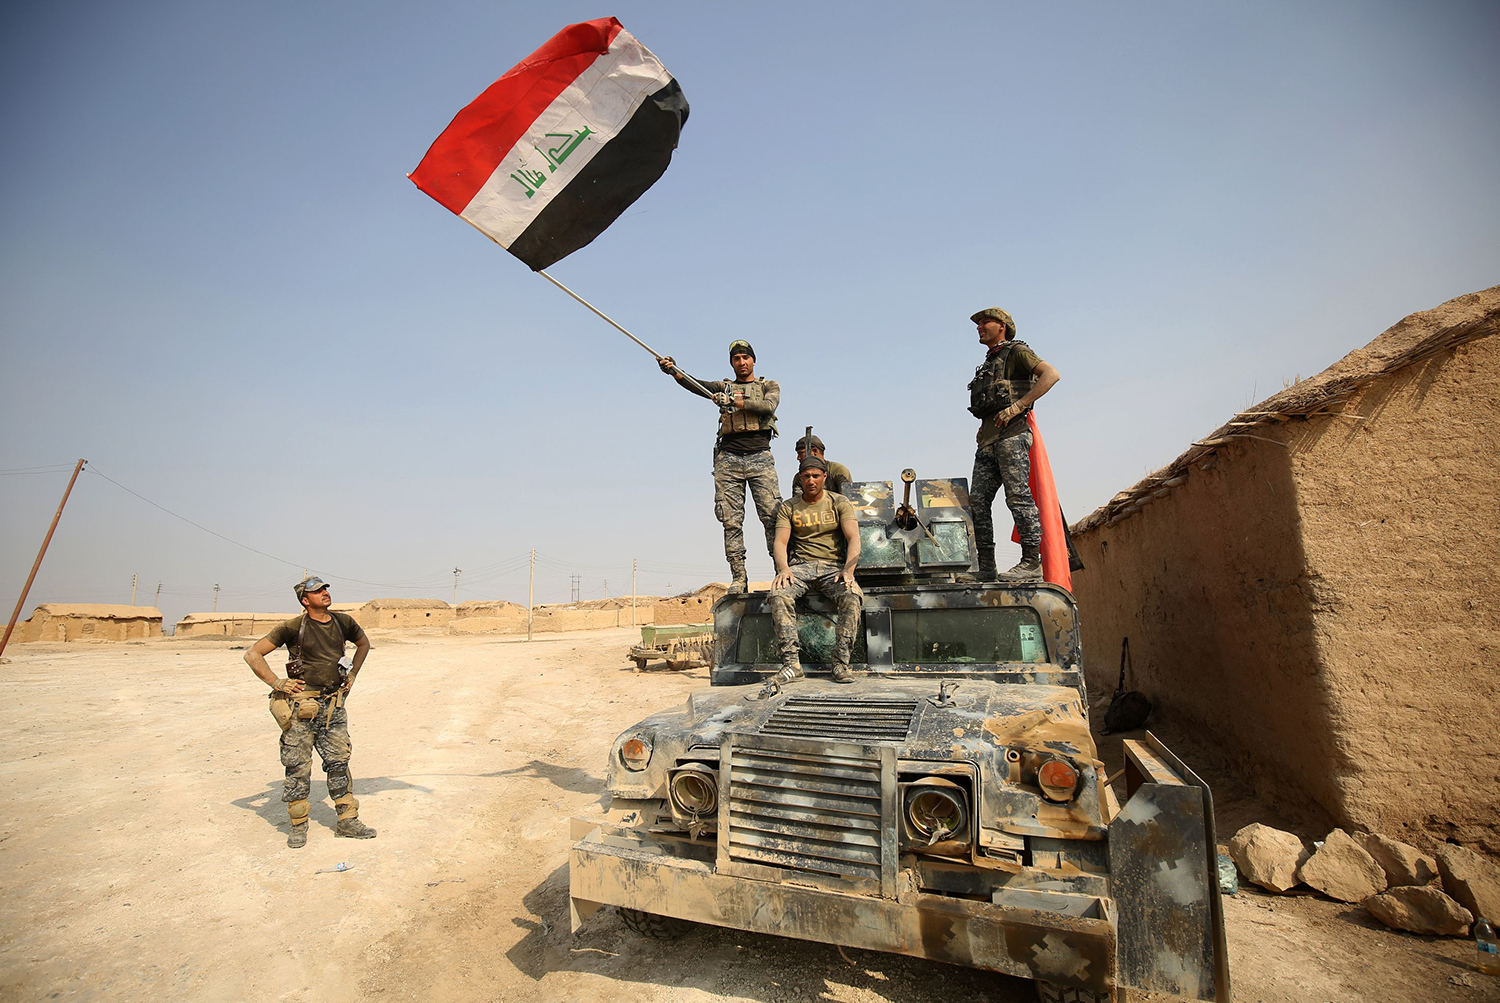 TOPSHOT - Iraqi government forces raise their national flag as they enter the village of al-Khuwayn, south of Mosul, after recapturing it from Islamic State (IS) group jihadists on October 23, 2016, in part of an ongoing operation to tighten the noose around Mosul and reclaim the last major Iraqi city under IS control. / AFP PHOTO / AHMAD AL-RUBAYE / TT / kod 444